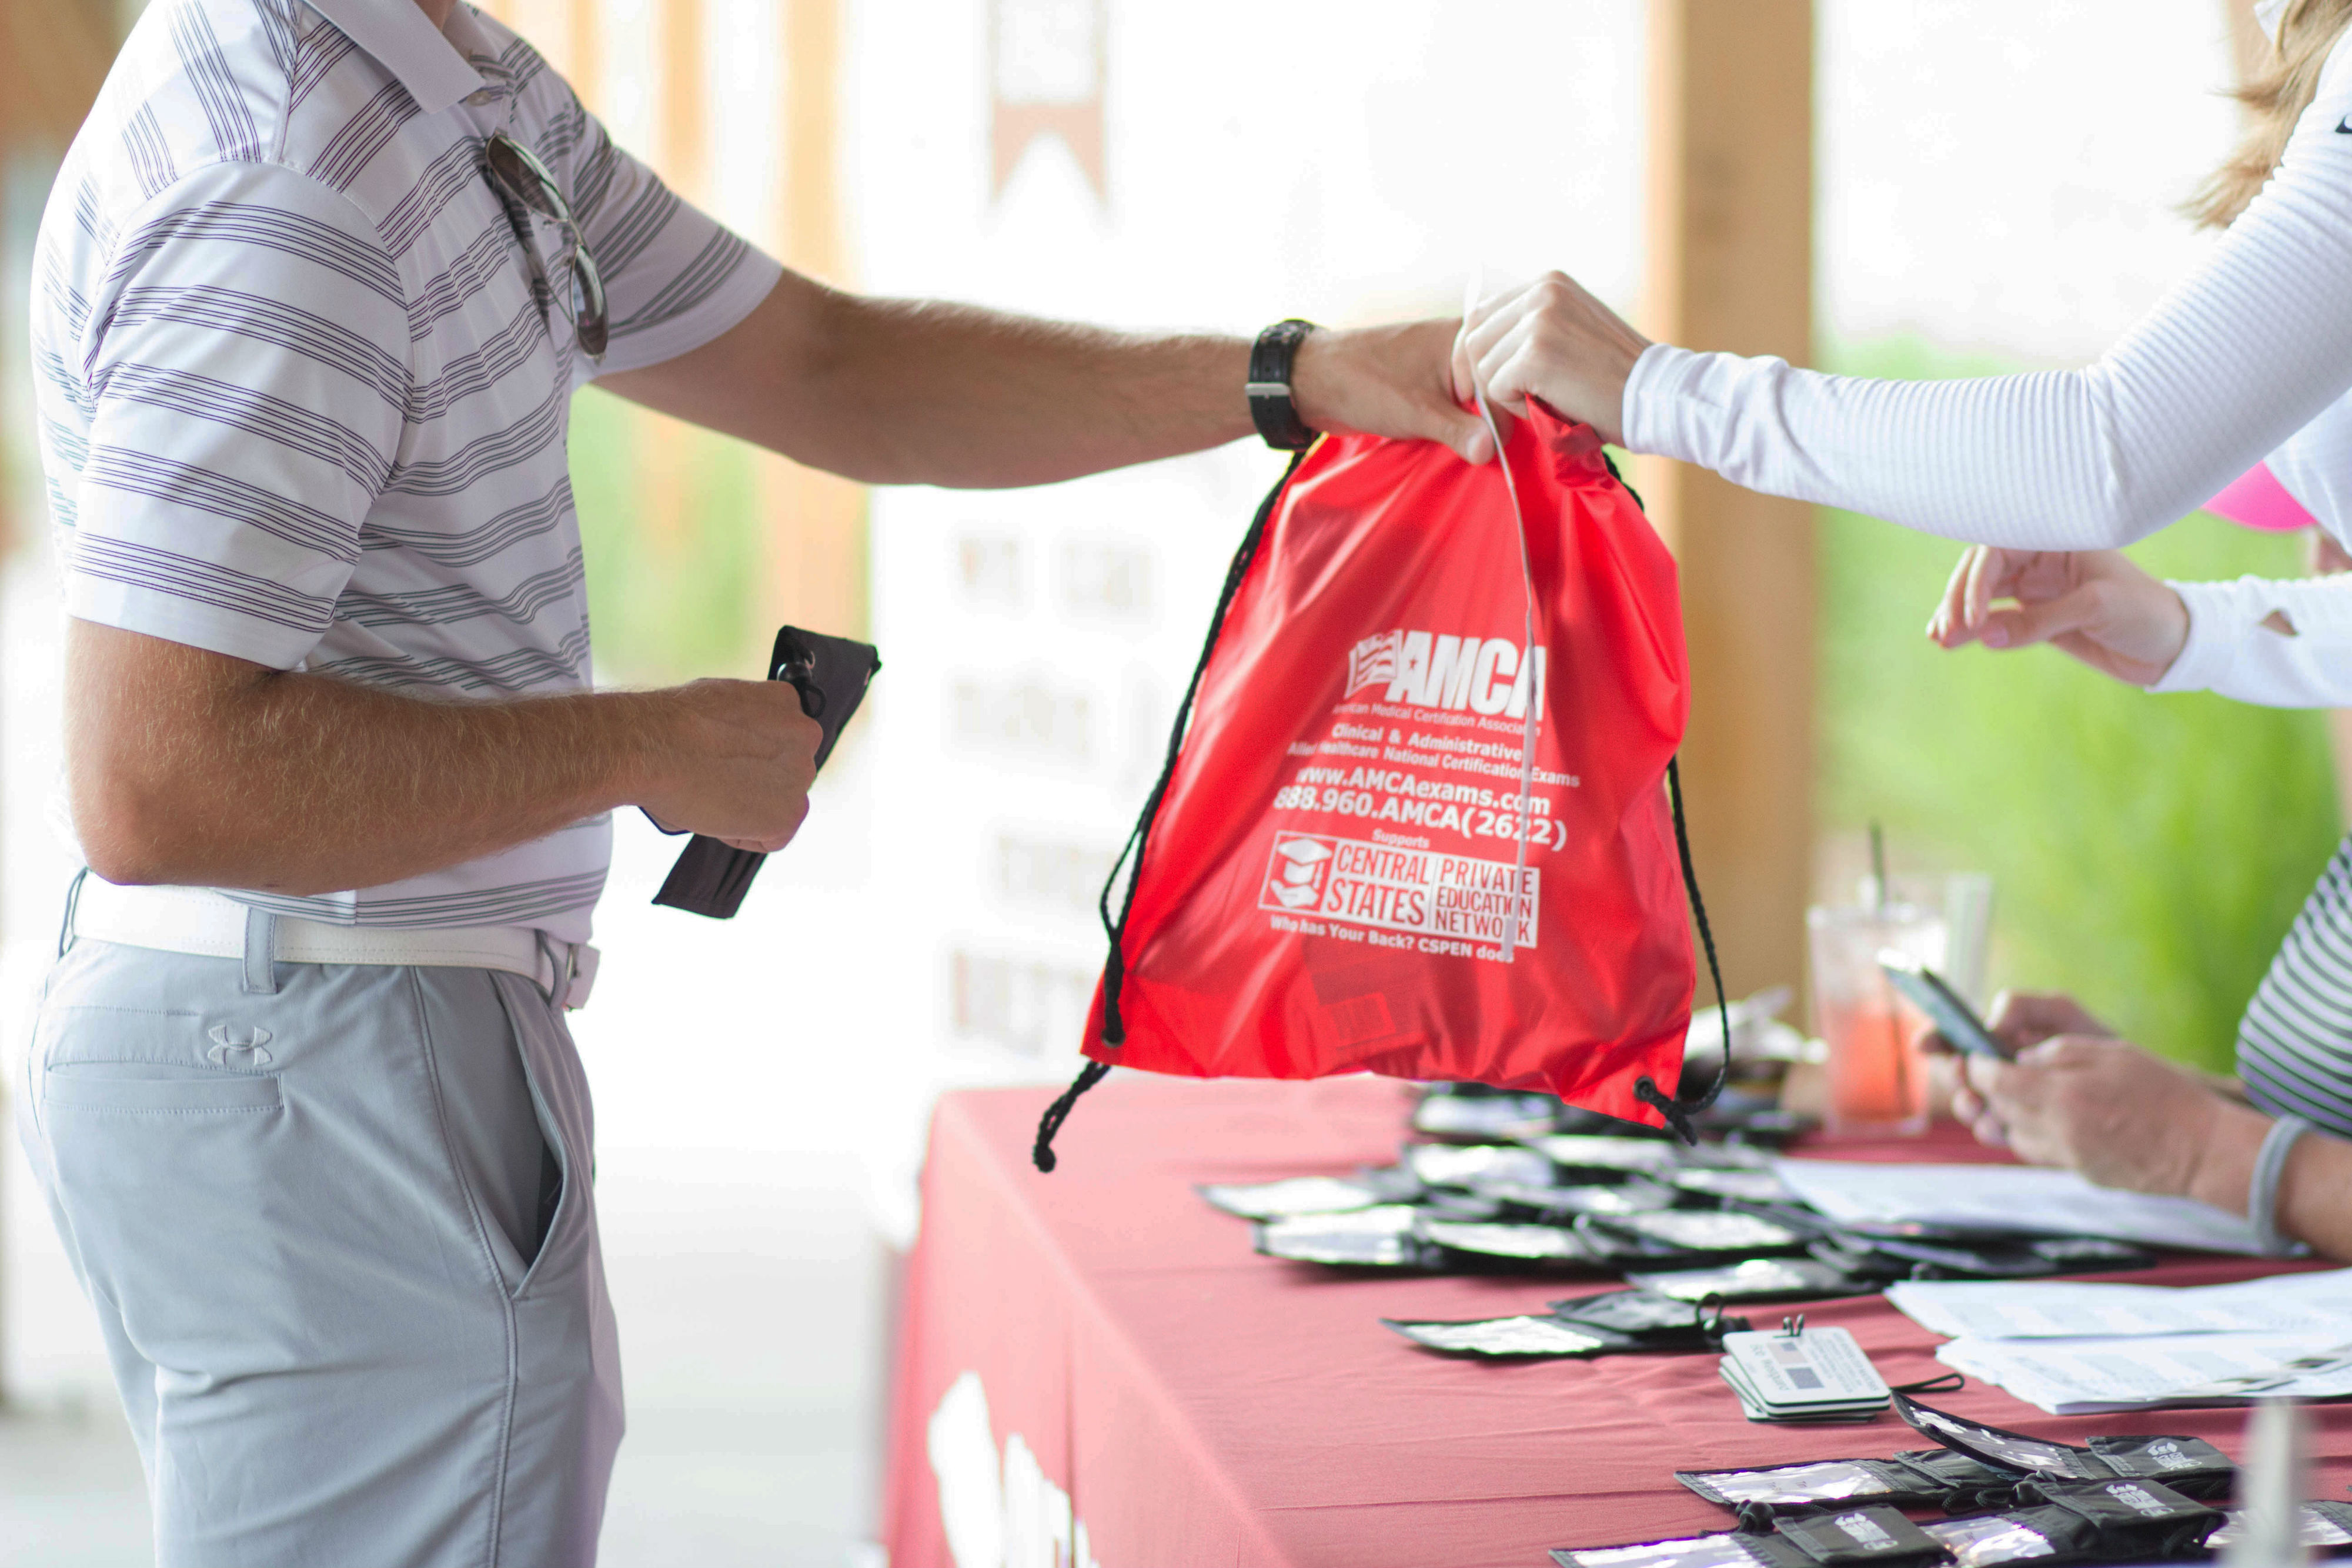 Golfers are greeted at registration at a private golf tournament at Hazeltine National Golf Club